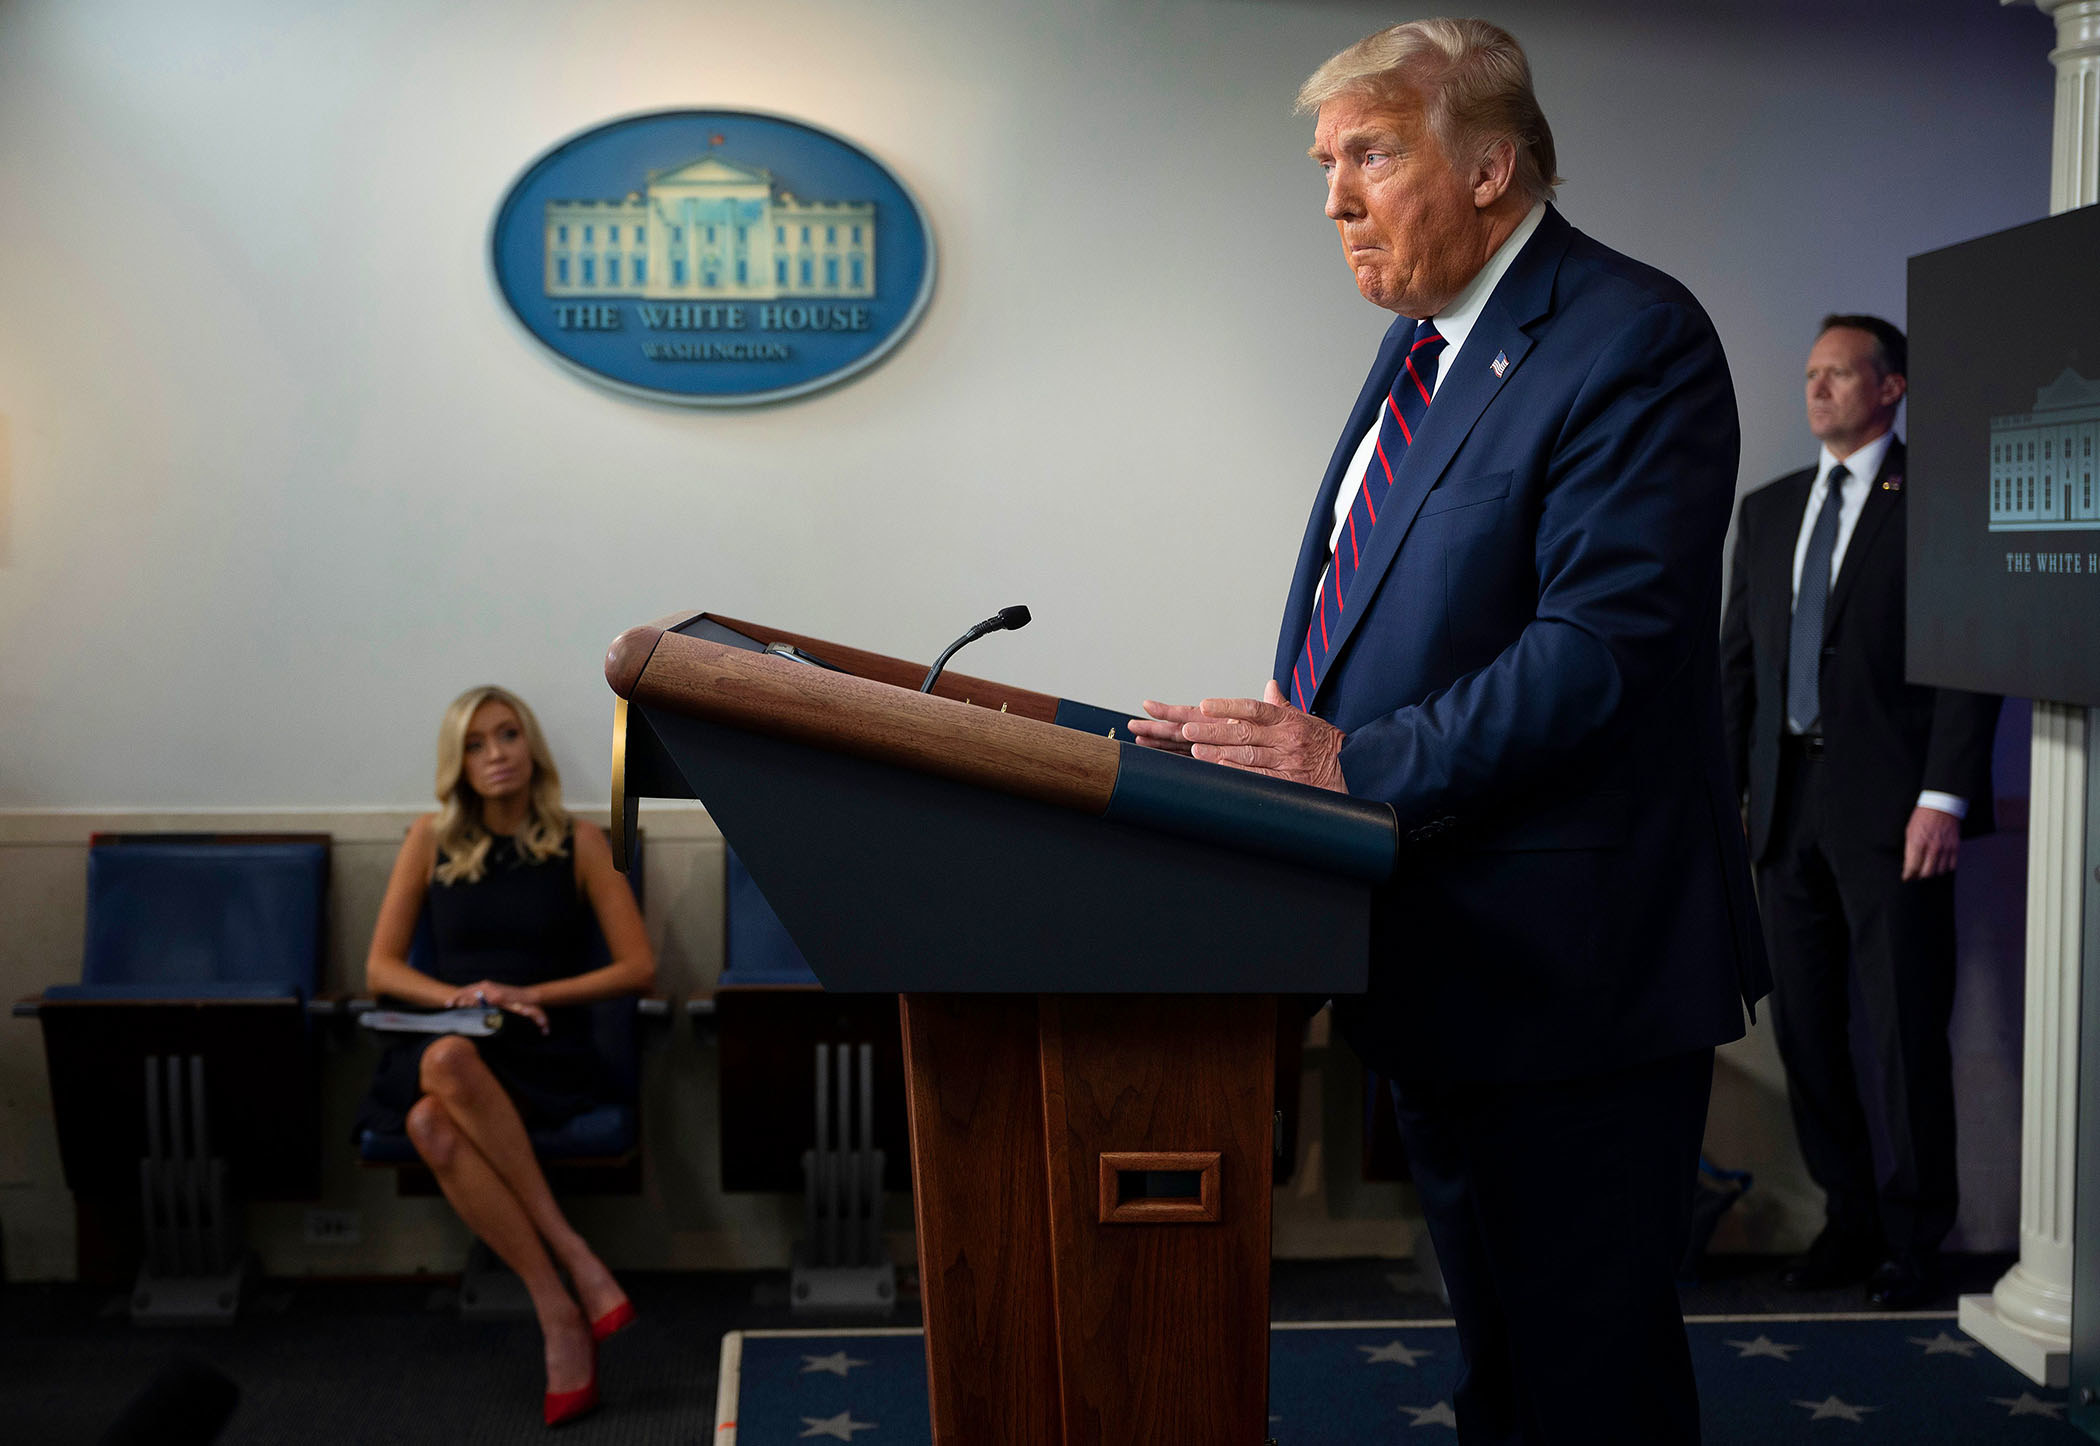 President Trump stands behind a lectern while press secretary Kayleigh McEnany sits in the background